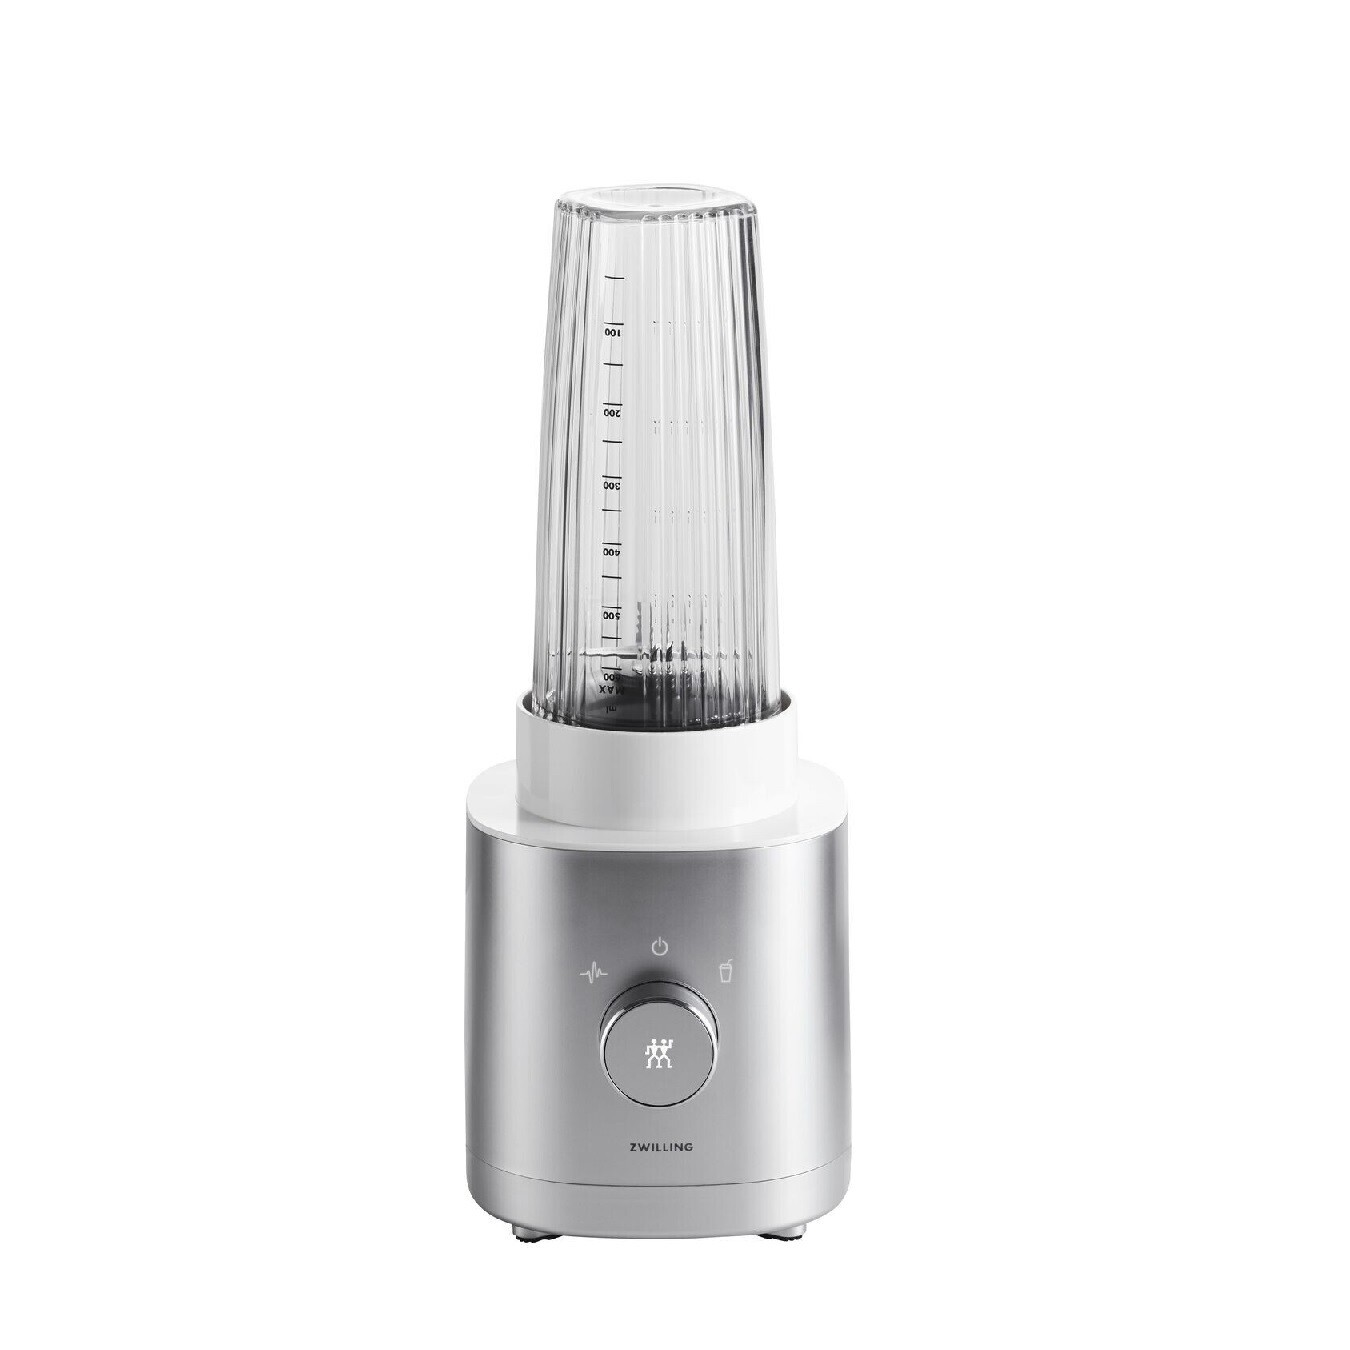 ZWILLING 'enfinigy' personal blender zilver/wit